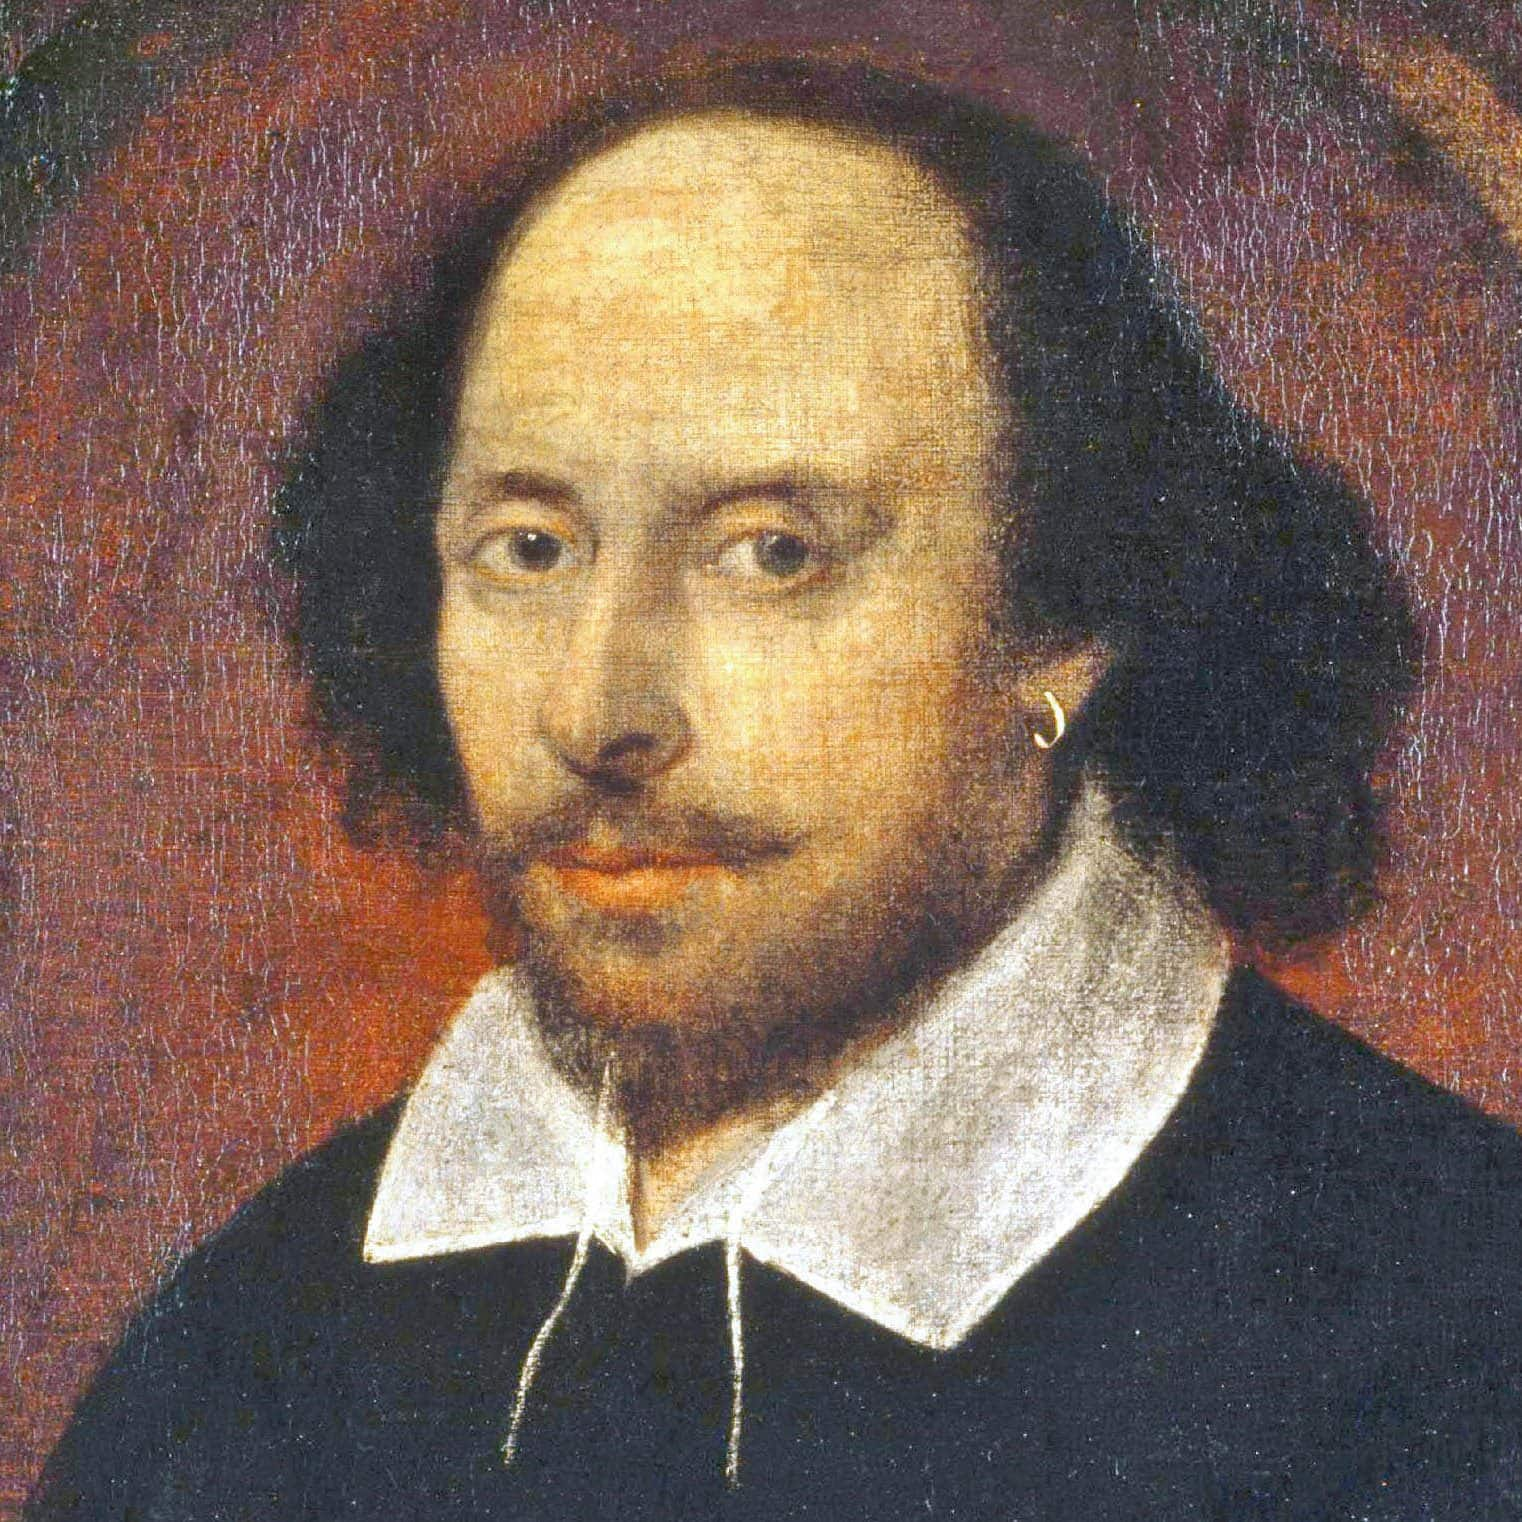 Poet and playwright William Shakespeare